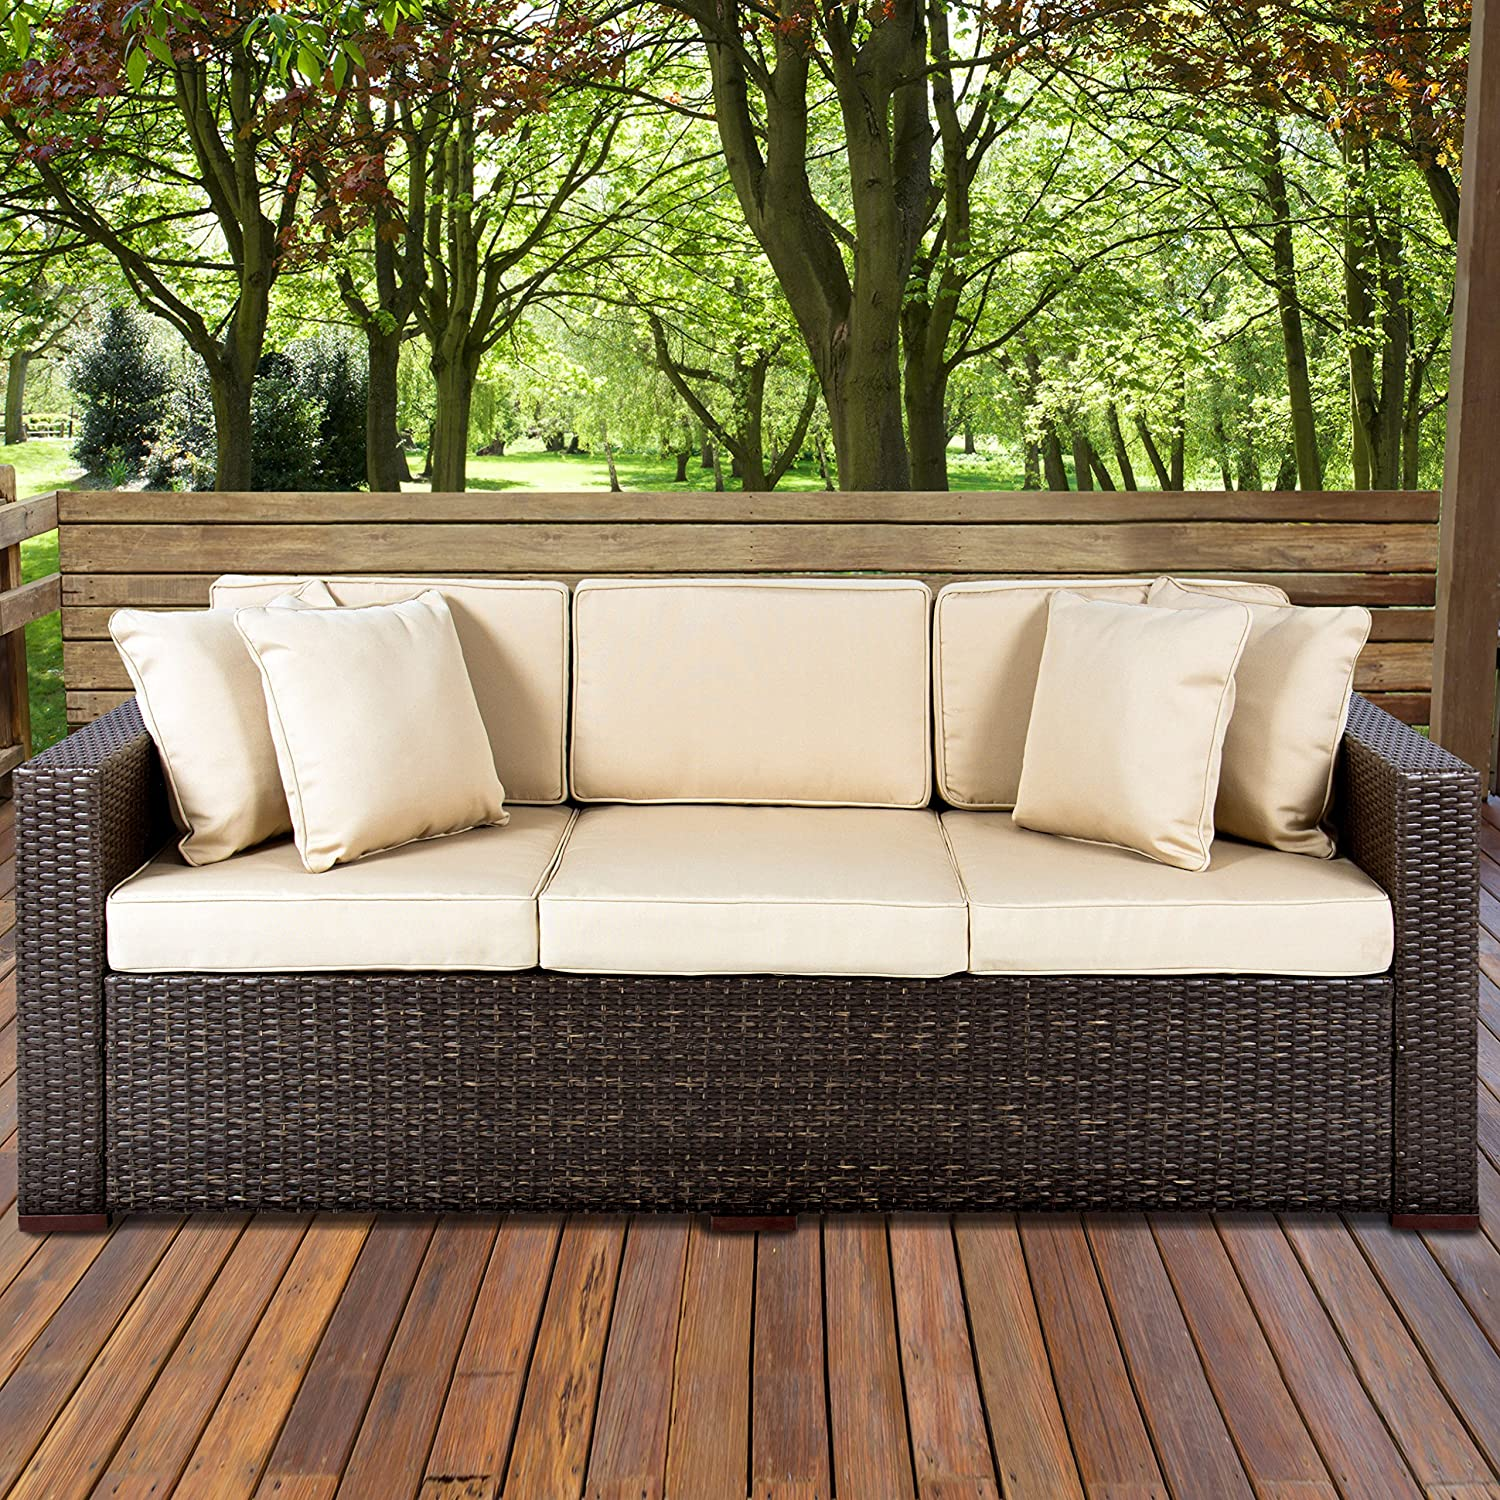 Amazon.com : Best ChoiceProducts Outdoor Wicker Patio Furniture Sofa 3  Seater Luxury Comfort Brown Wicker Couch : Garden U0026 Outdoor